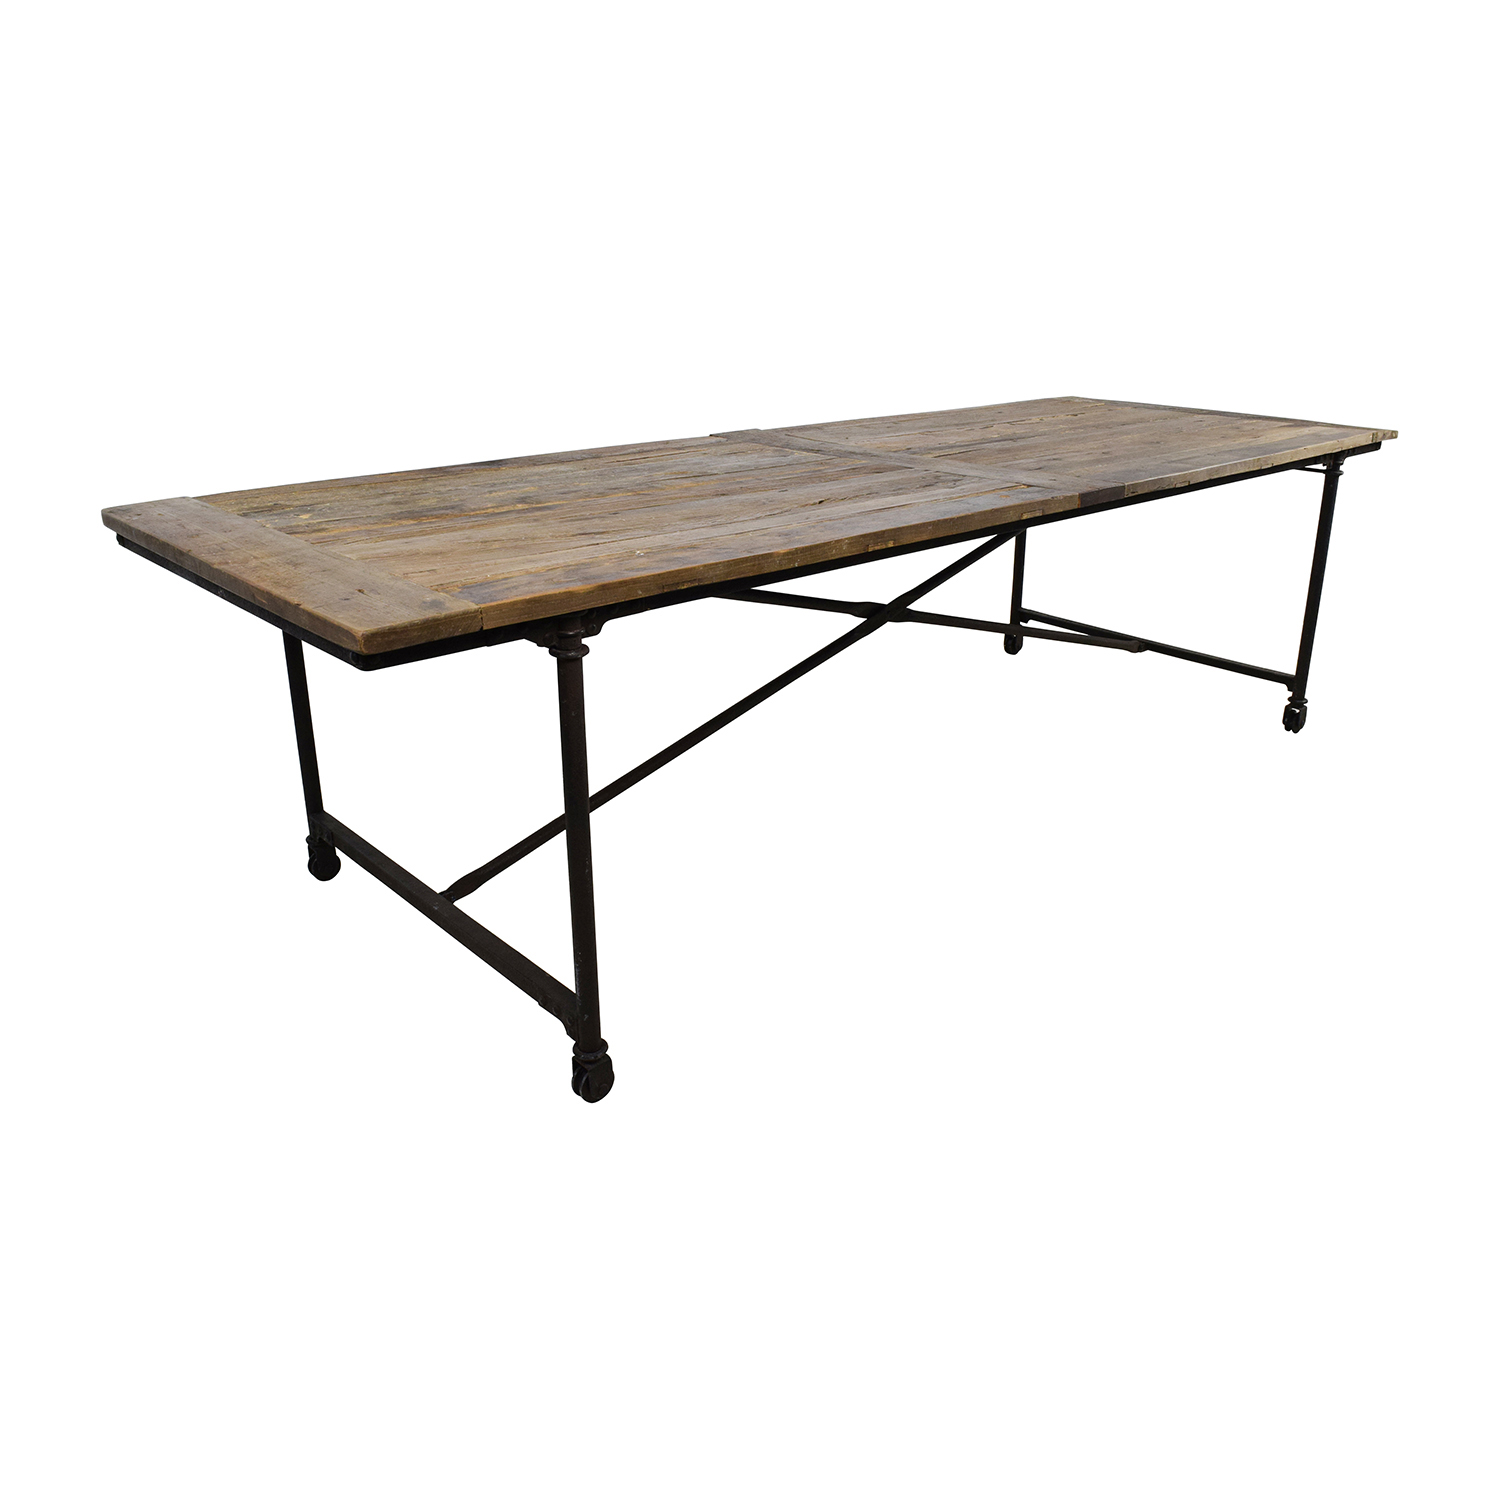 Restoration Hardware Kitchen Tables: Restoration Hardware Restoration Hardware Flat